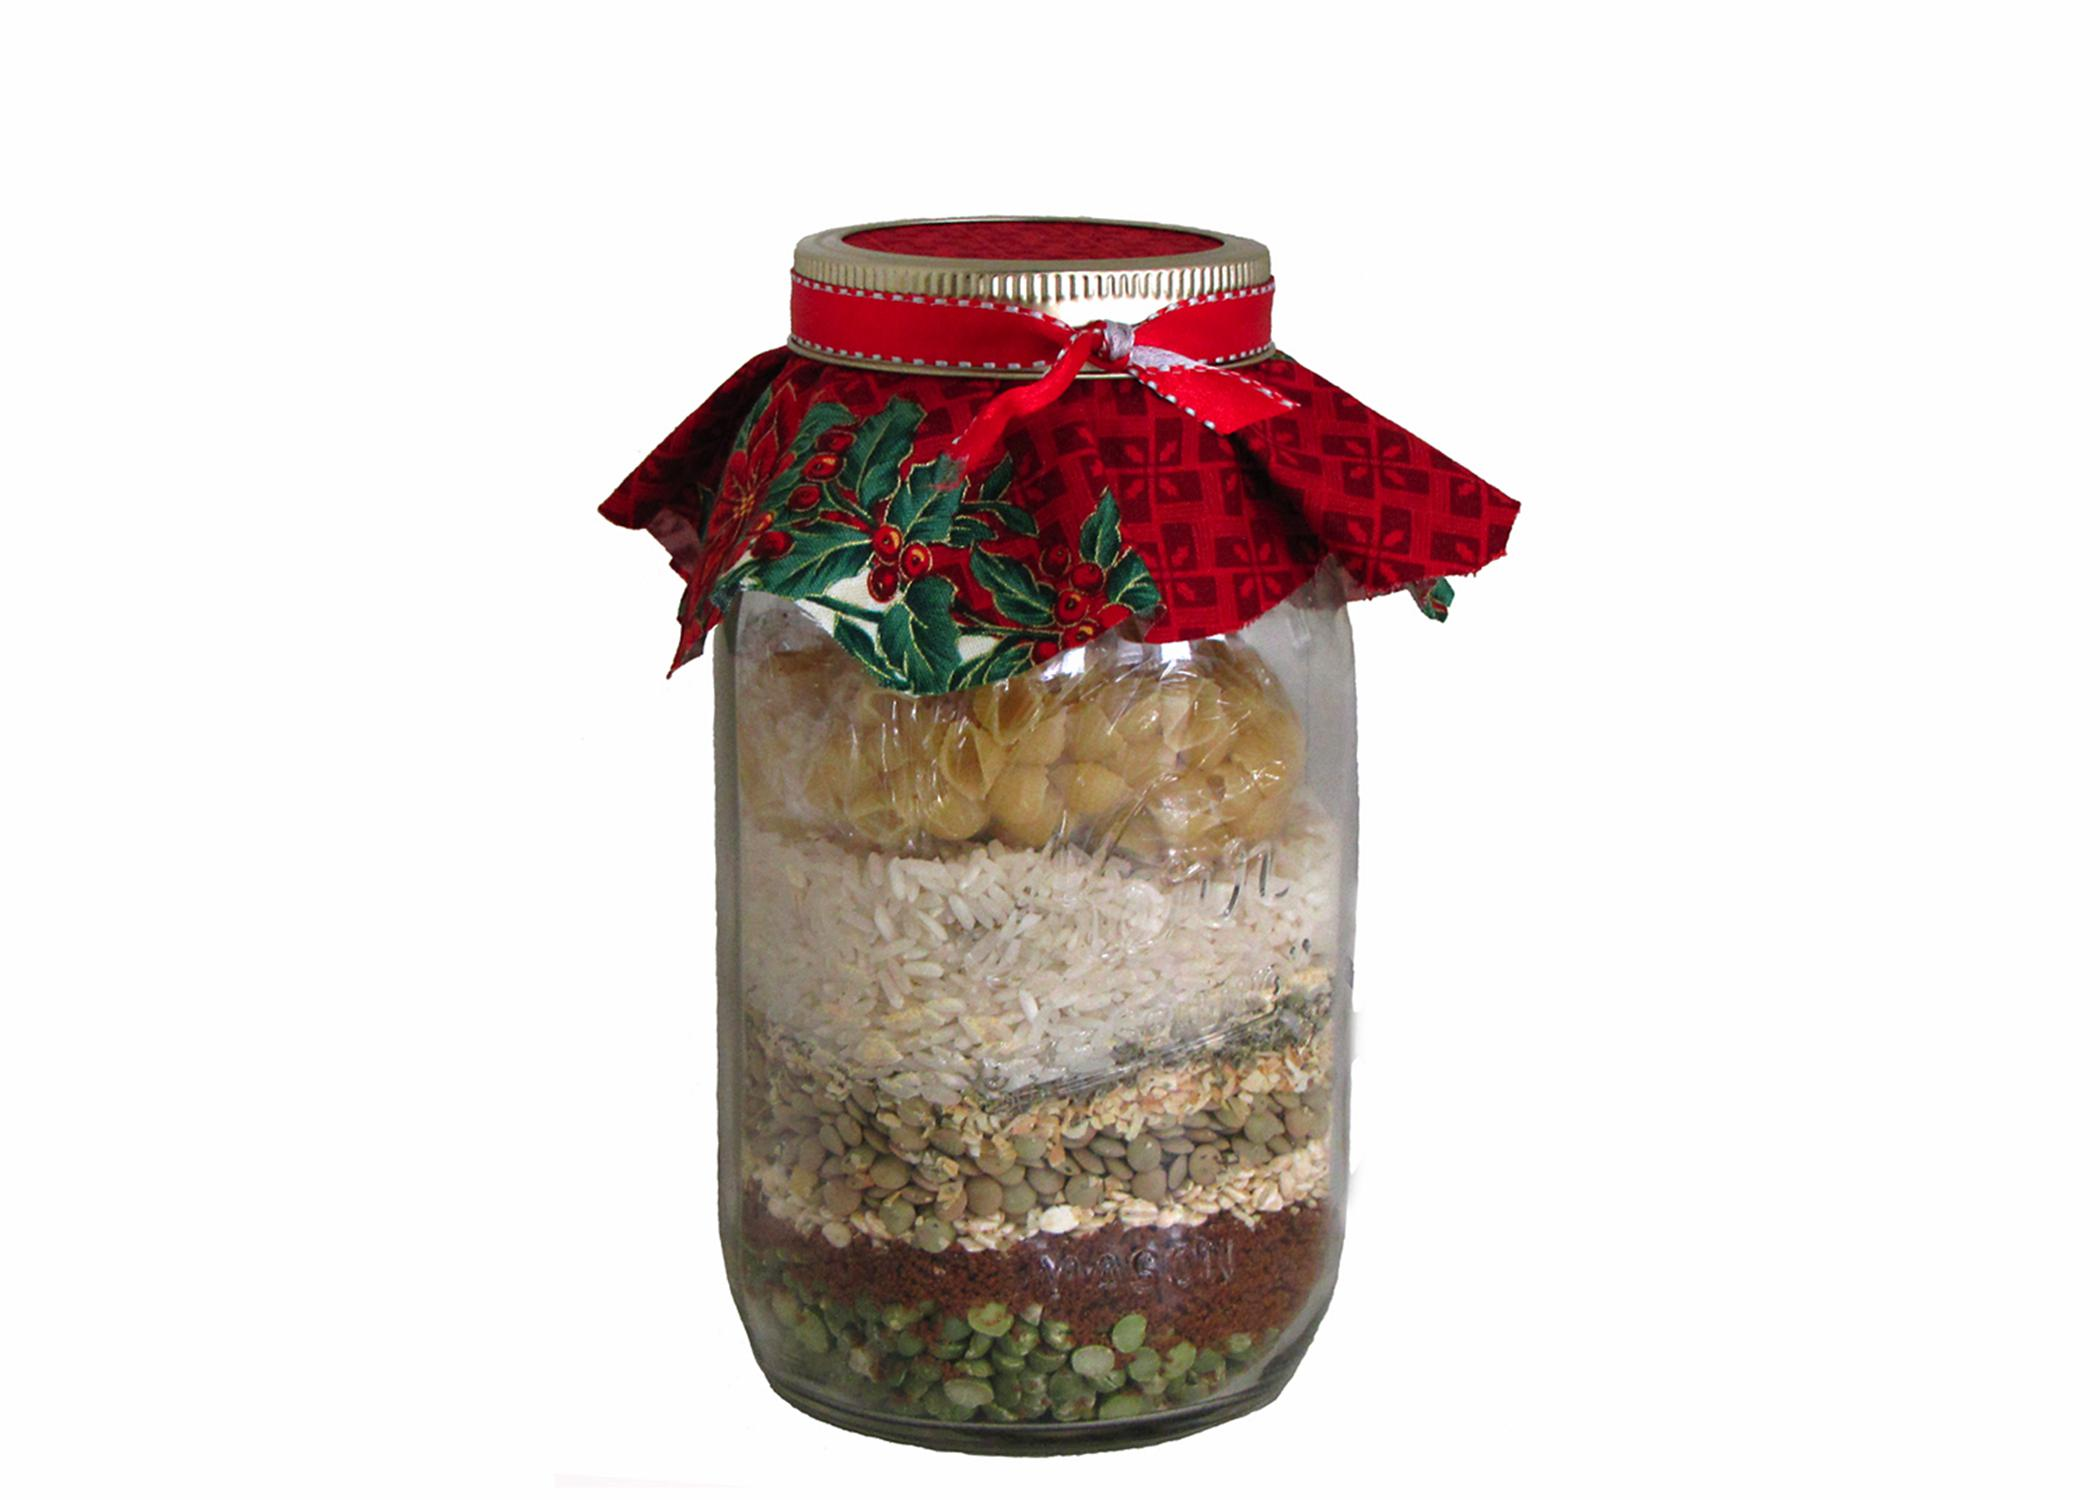 Handmade food gifts, such as jars with ingredients for a pot of soup or batch of cookies, are thoughtful ideas during the holiday season. (Submitted photo)